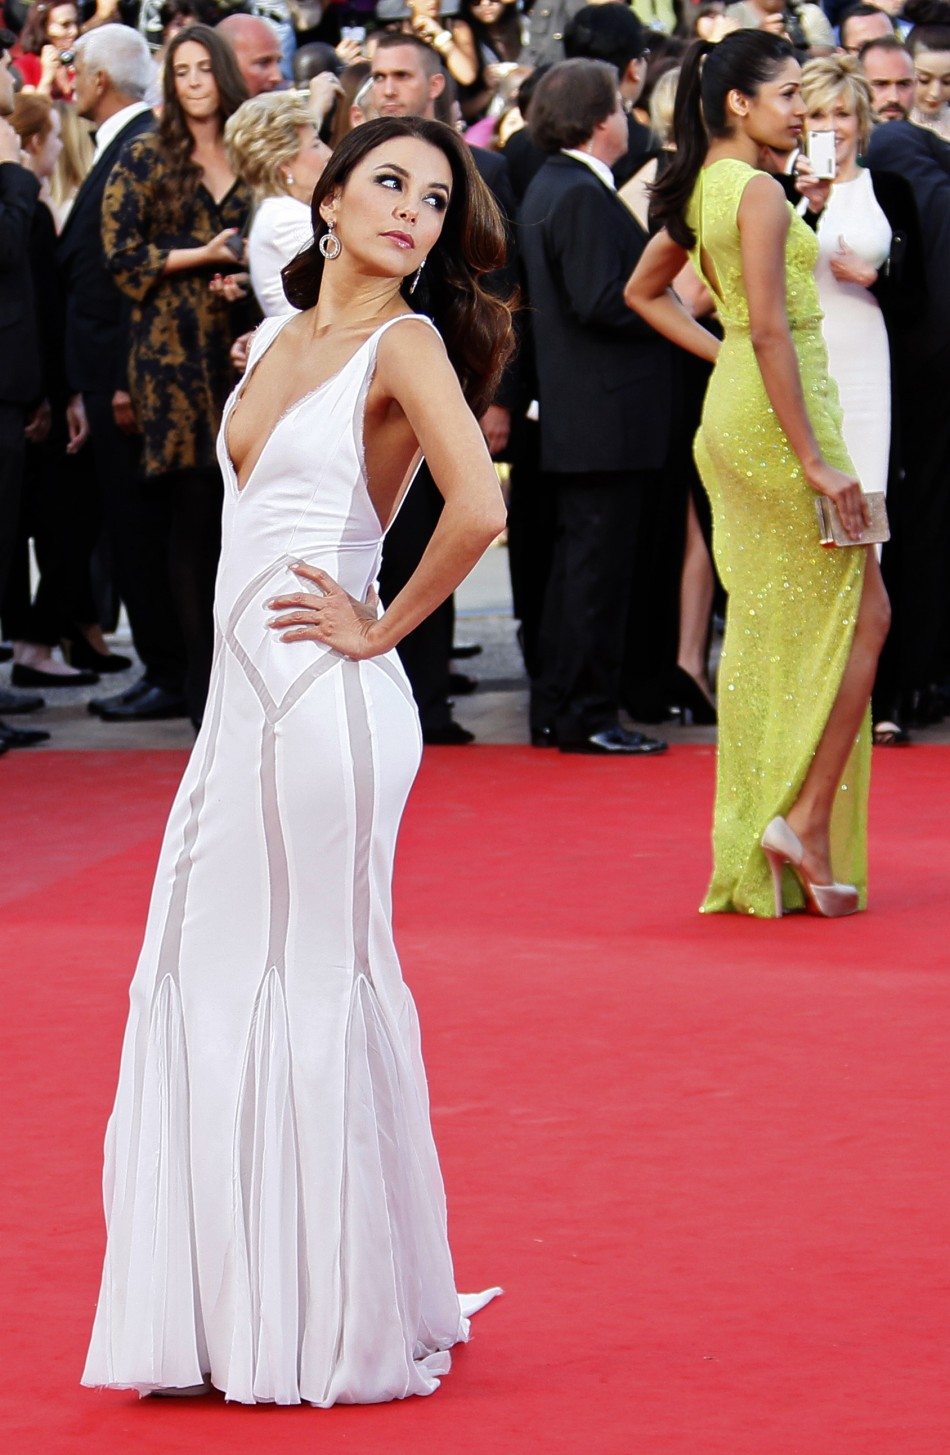 Actress Longoria arrives on the red carpet for the screeing of the film De rouille et d'os at the 65th Cannes Film Festival